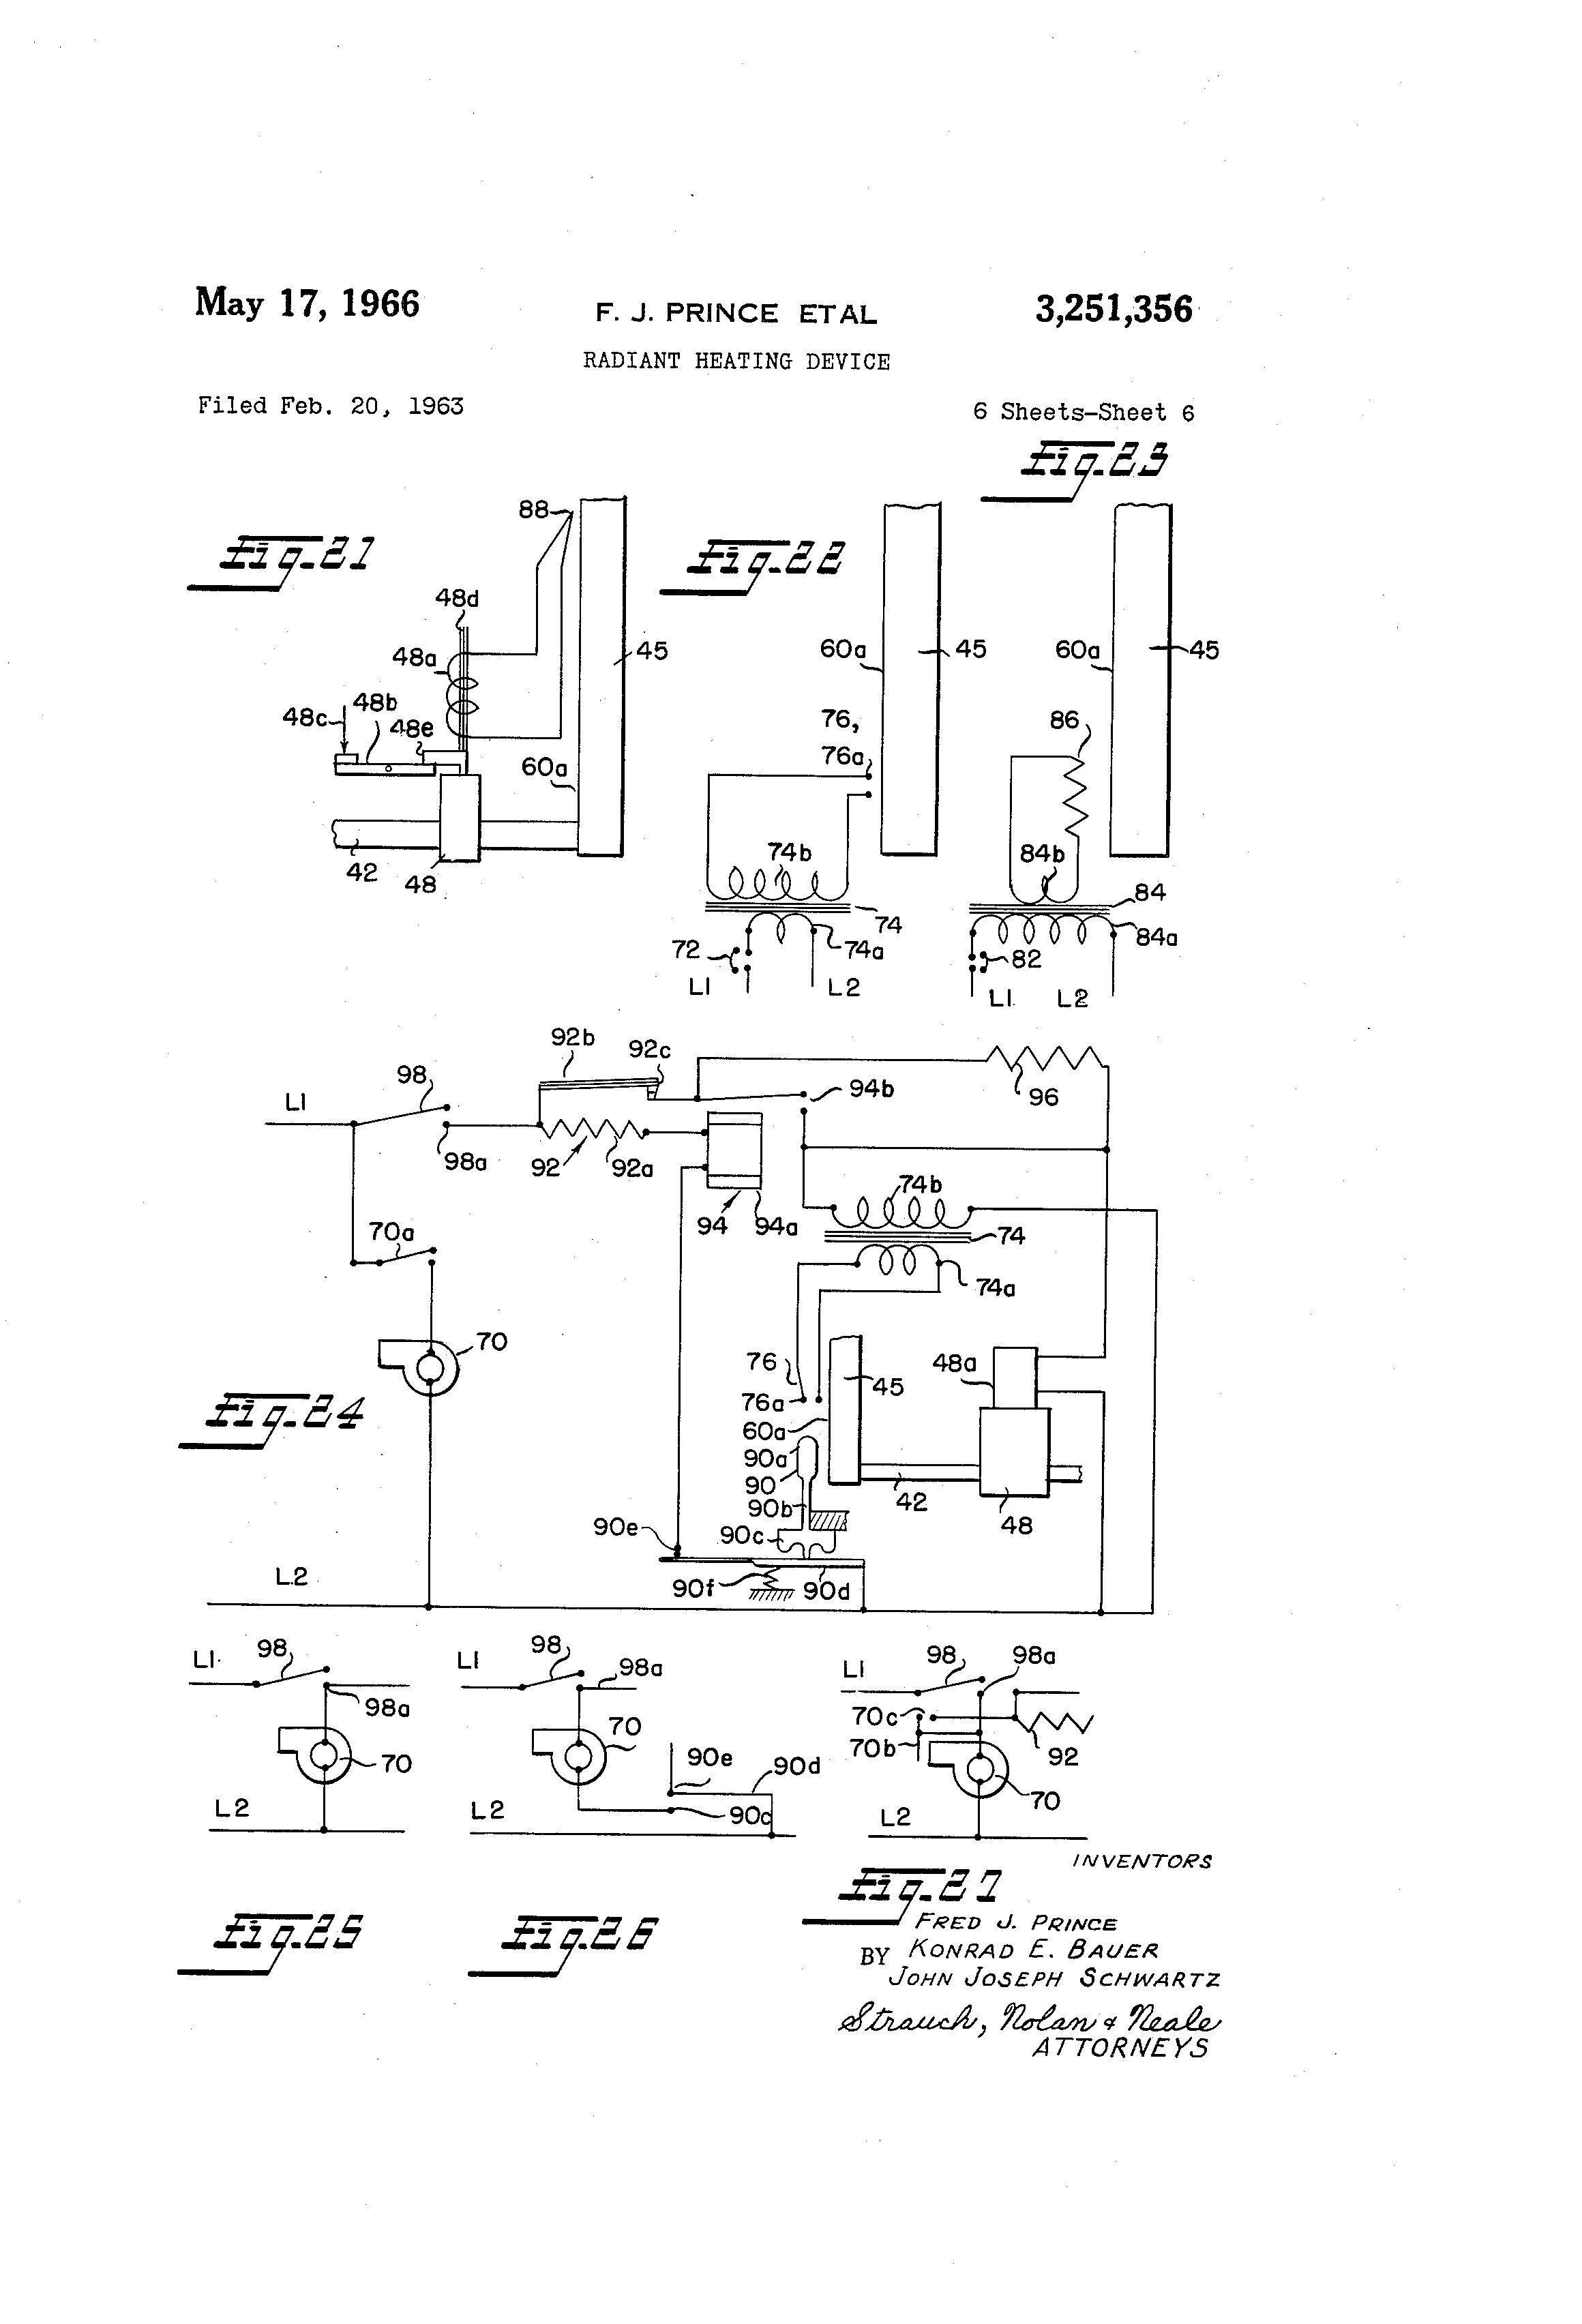 porch lift vertical platform lift wiring diagram Download-porch lift wiring diagram wiring diagram radixtheme rh radixtheme Wheelchair Lift Wiring Diagram Schematic Wheelchair Lift Wiring Diagram Schematic 12-t